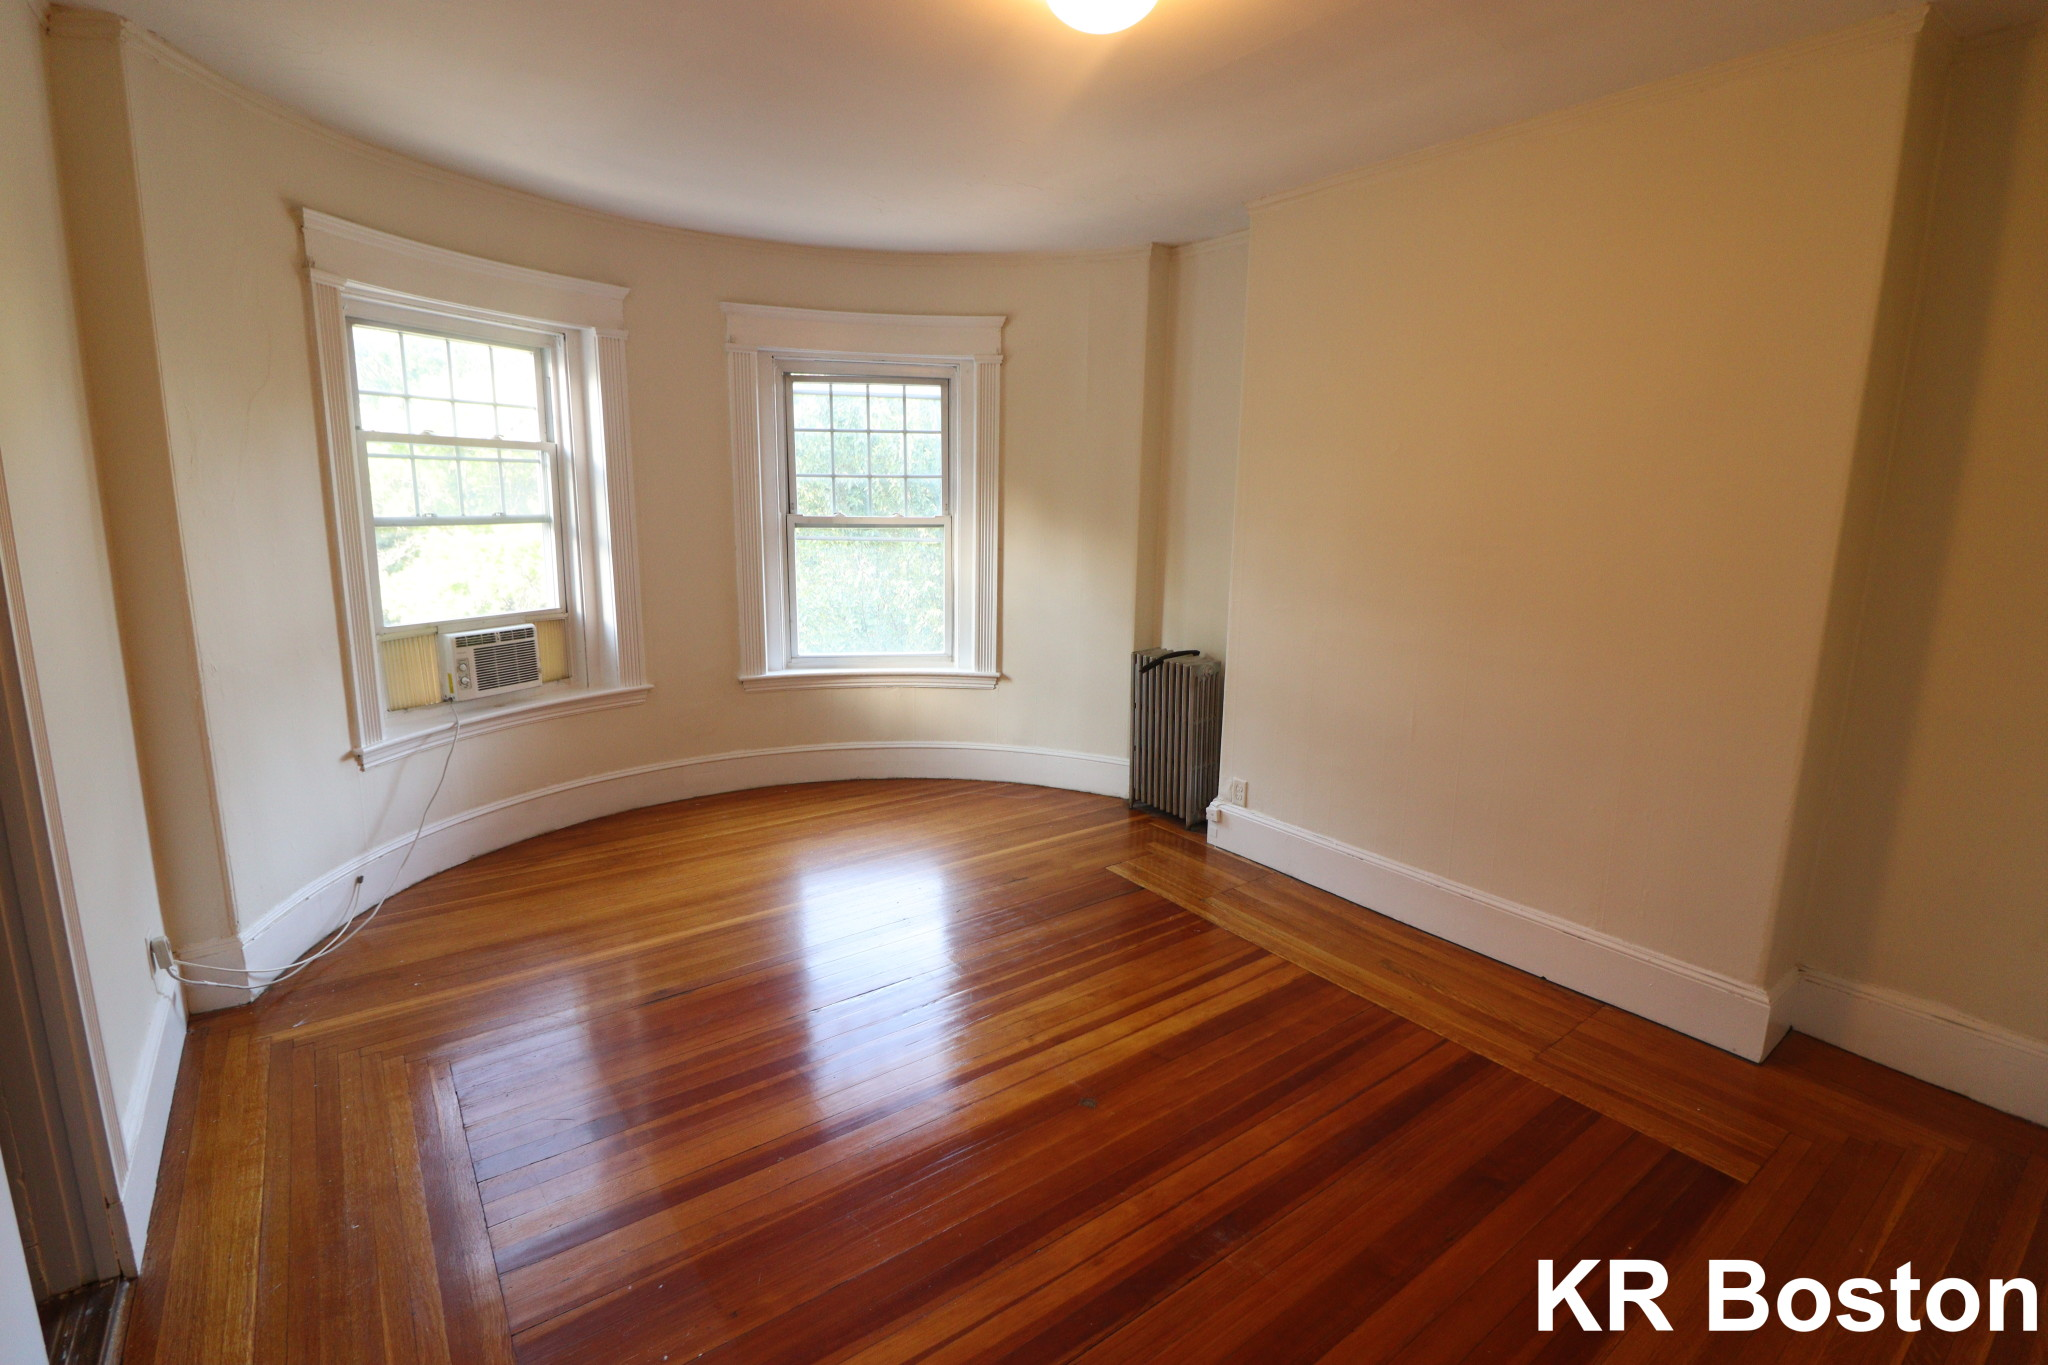 1 Bed, 1 Bath apartment in Brookline for $1,950